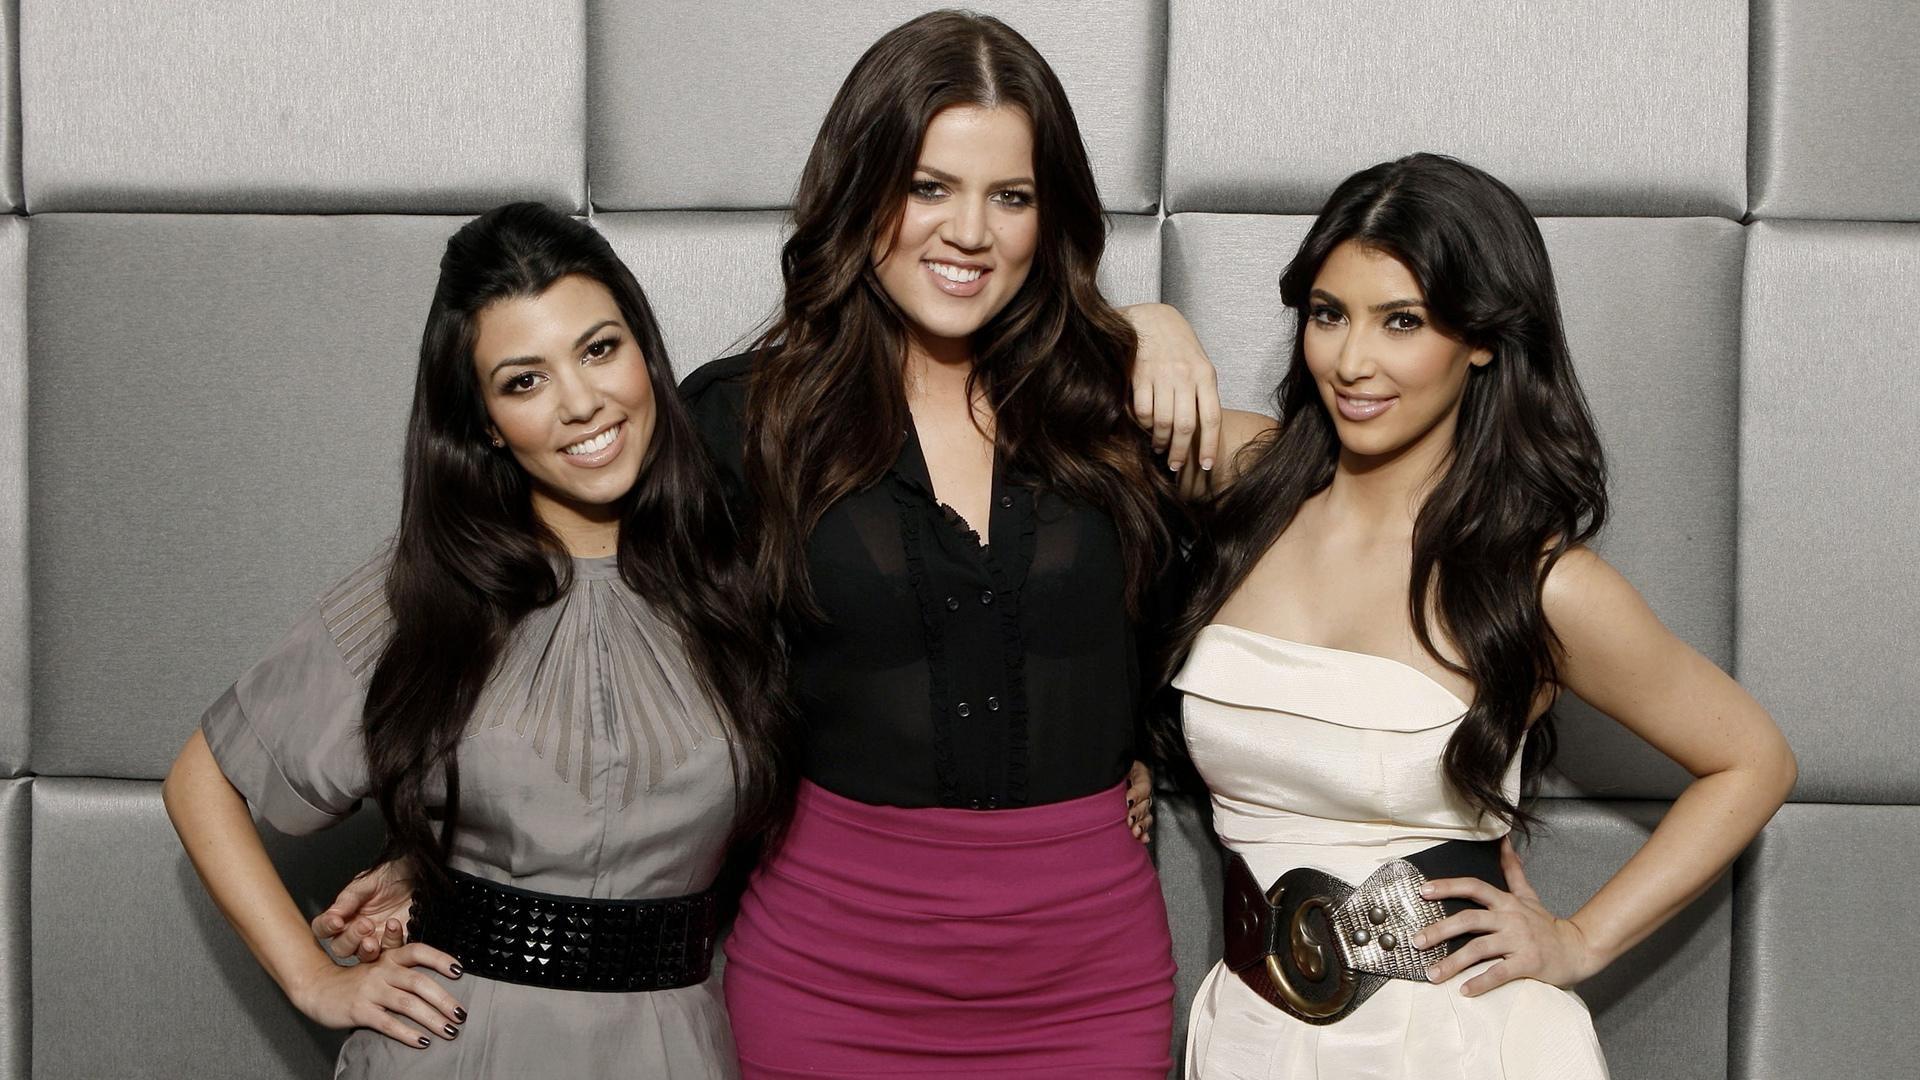 Keeping Up With The Kardashians Wallpaper HD Download